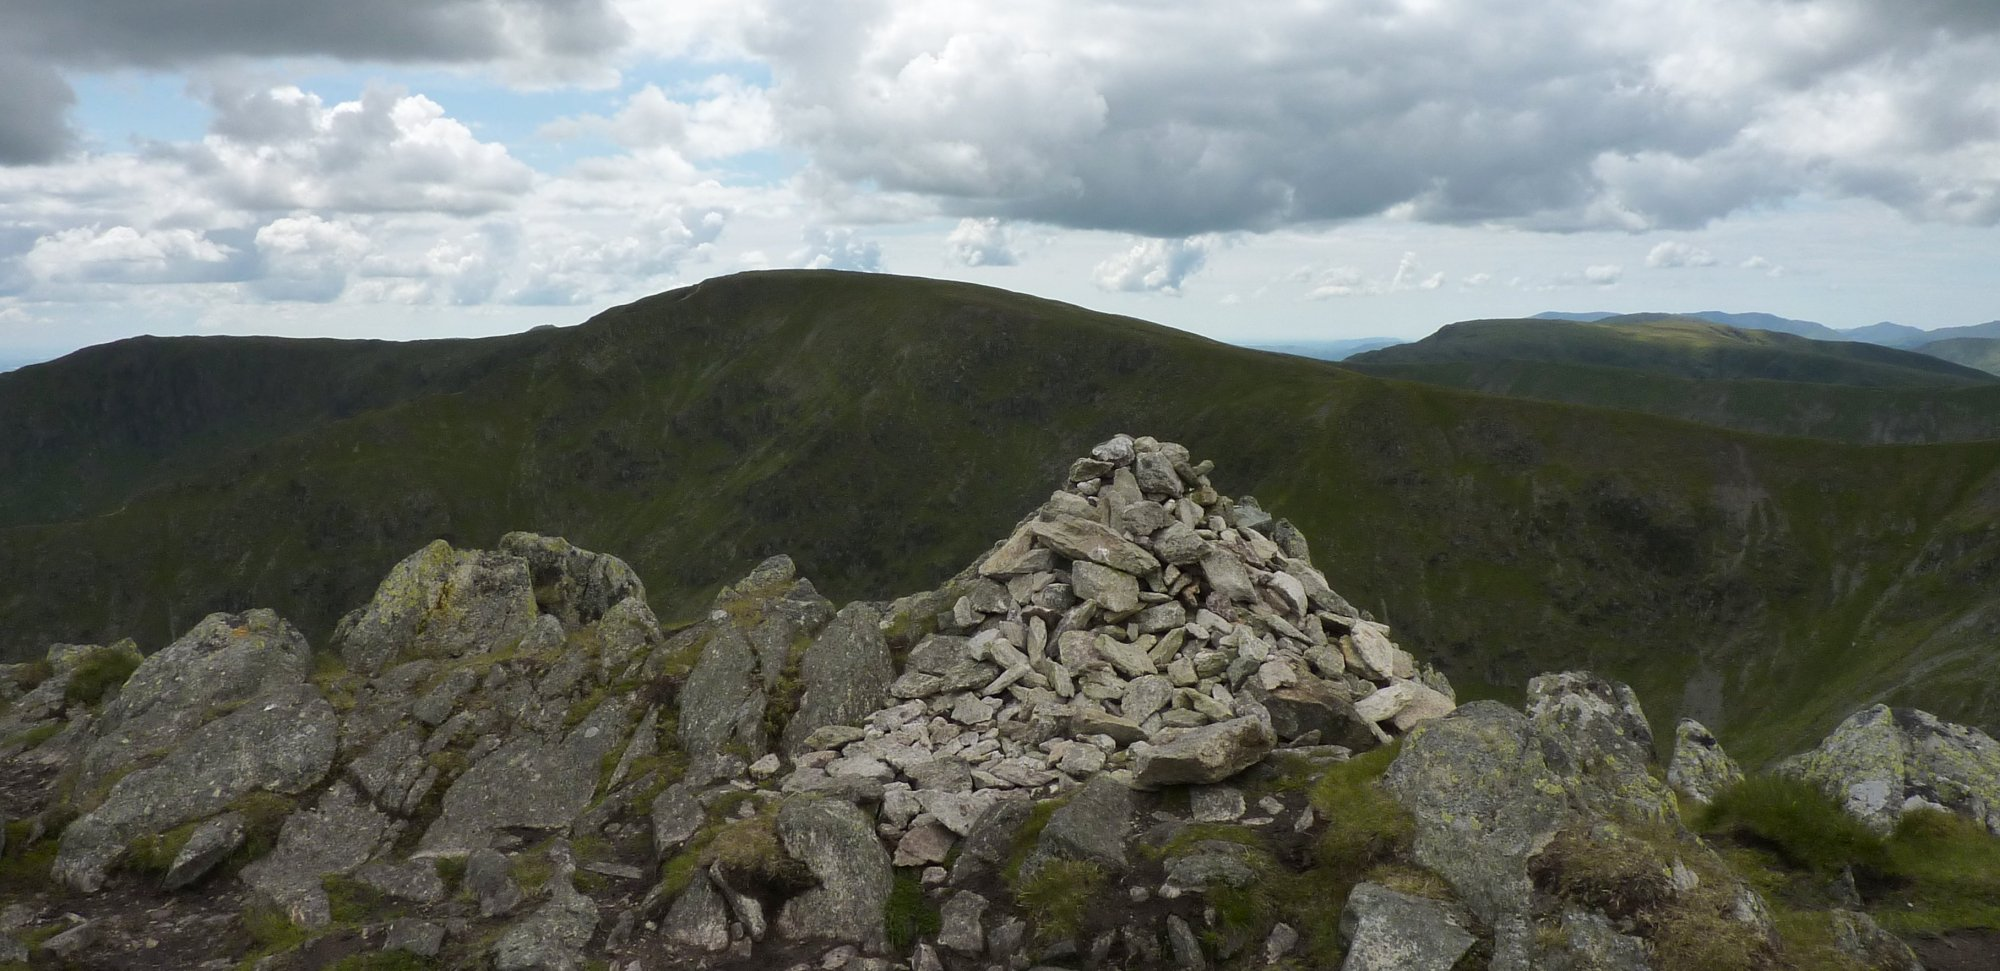 Kidsty Pike summit